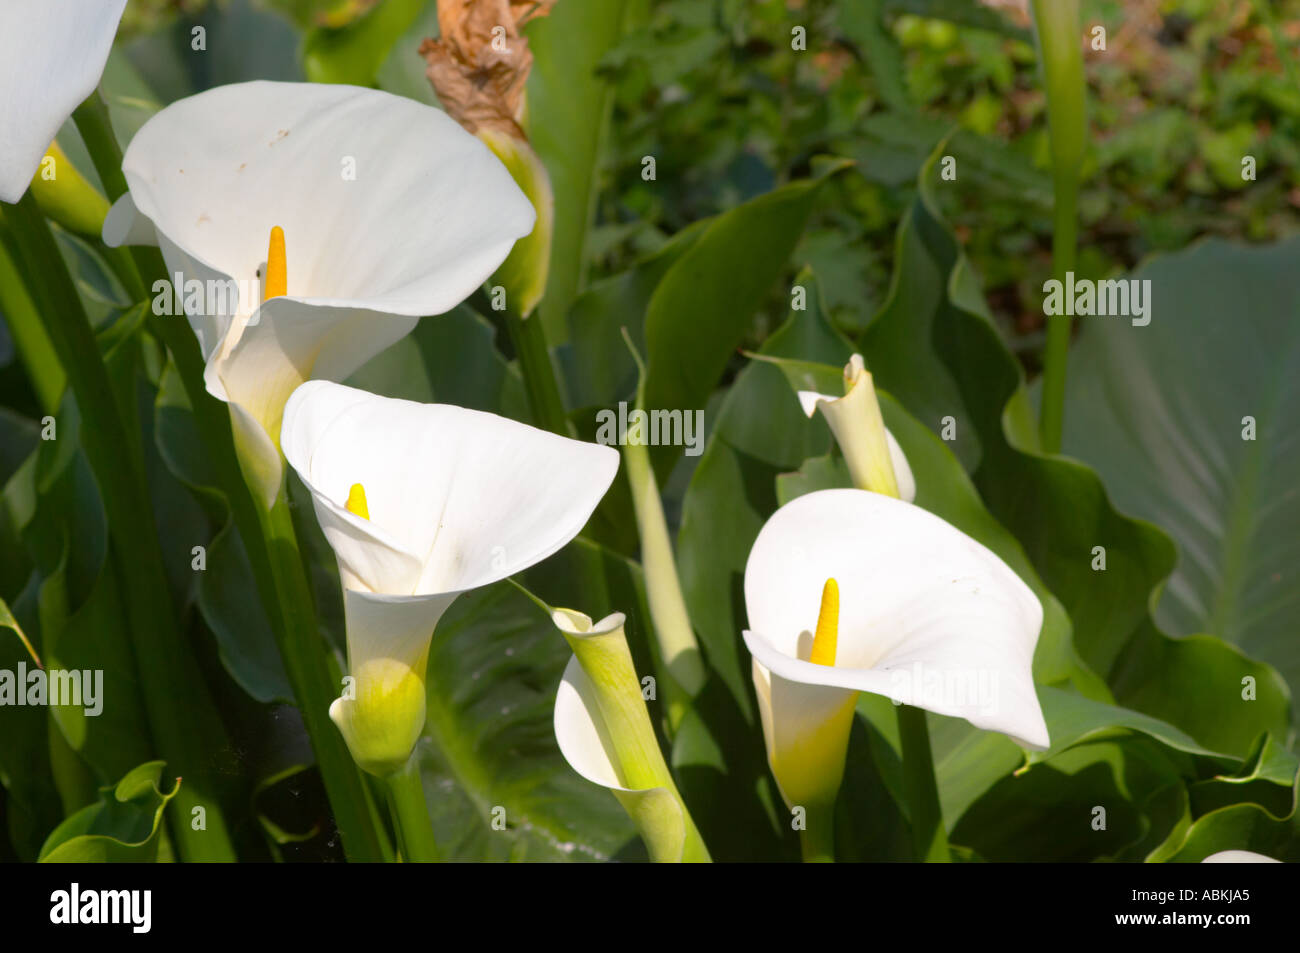 White calla lily flowers in the garden chateau kirwan cantenac white calla lily flowers in the garden chateau kirwan cantenac margaux medoc bordeaux gironde aquitaine france izmirmasajfo